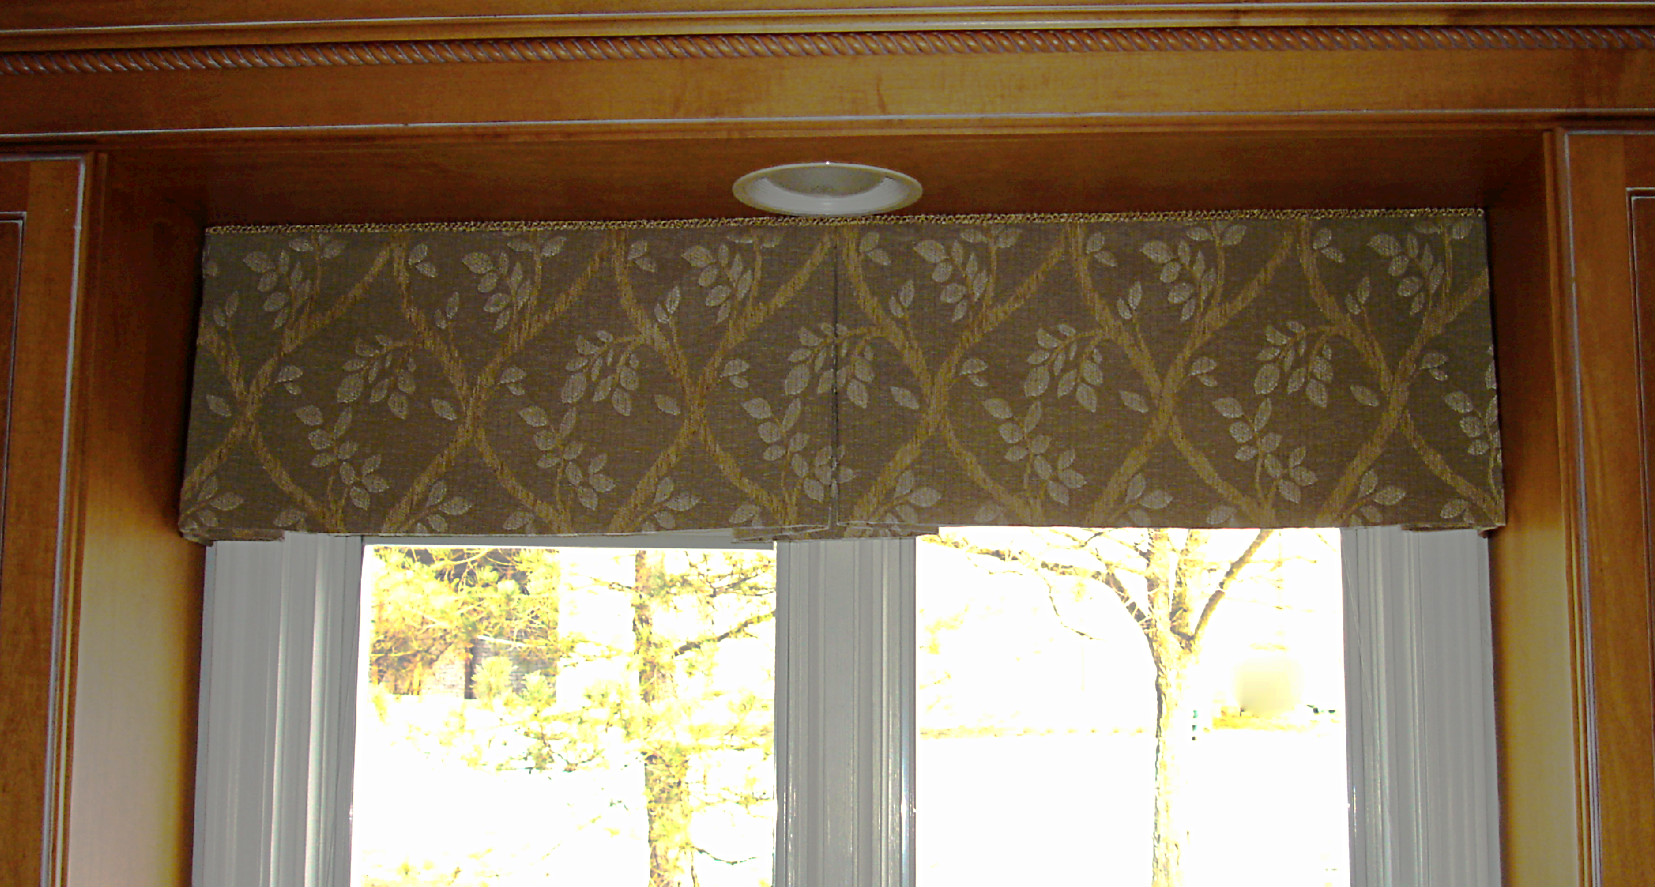 Valance in Window Valances - Compare Prices, Read Reviews and Buy